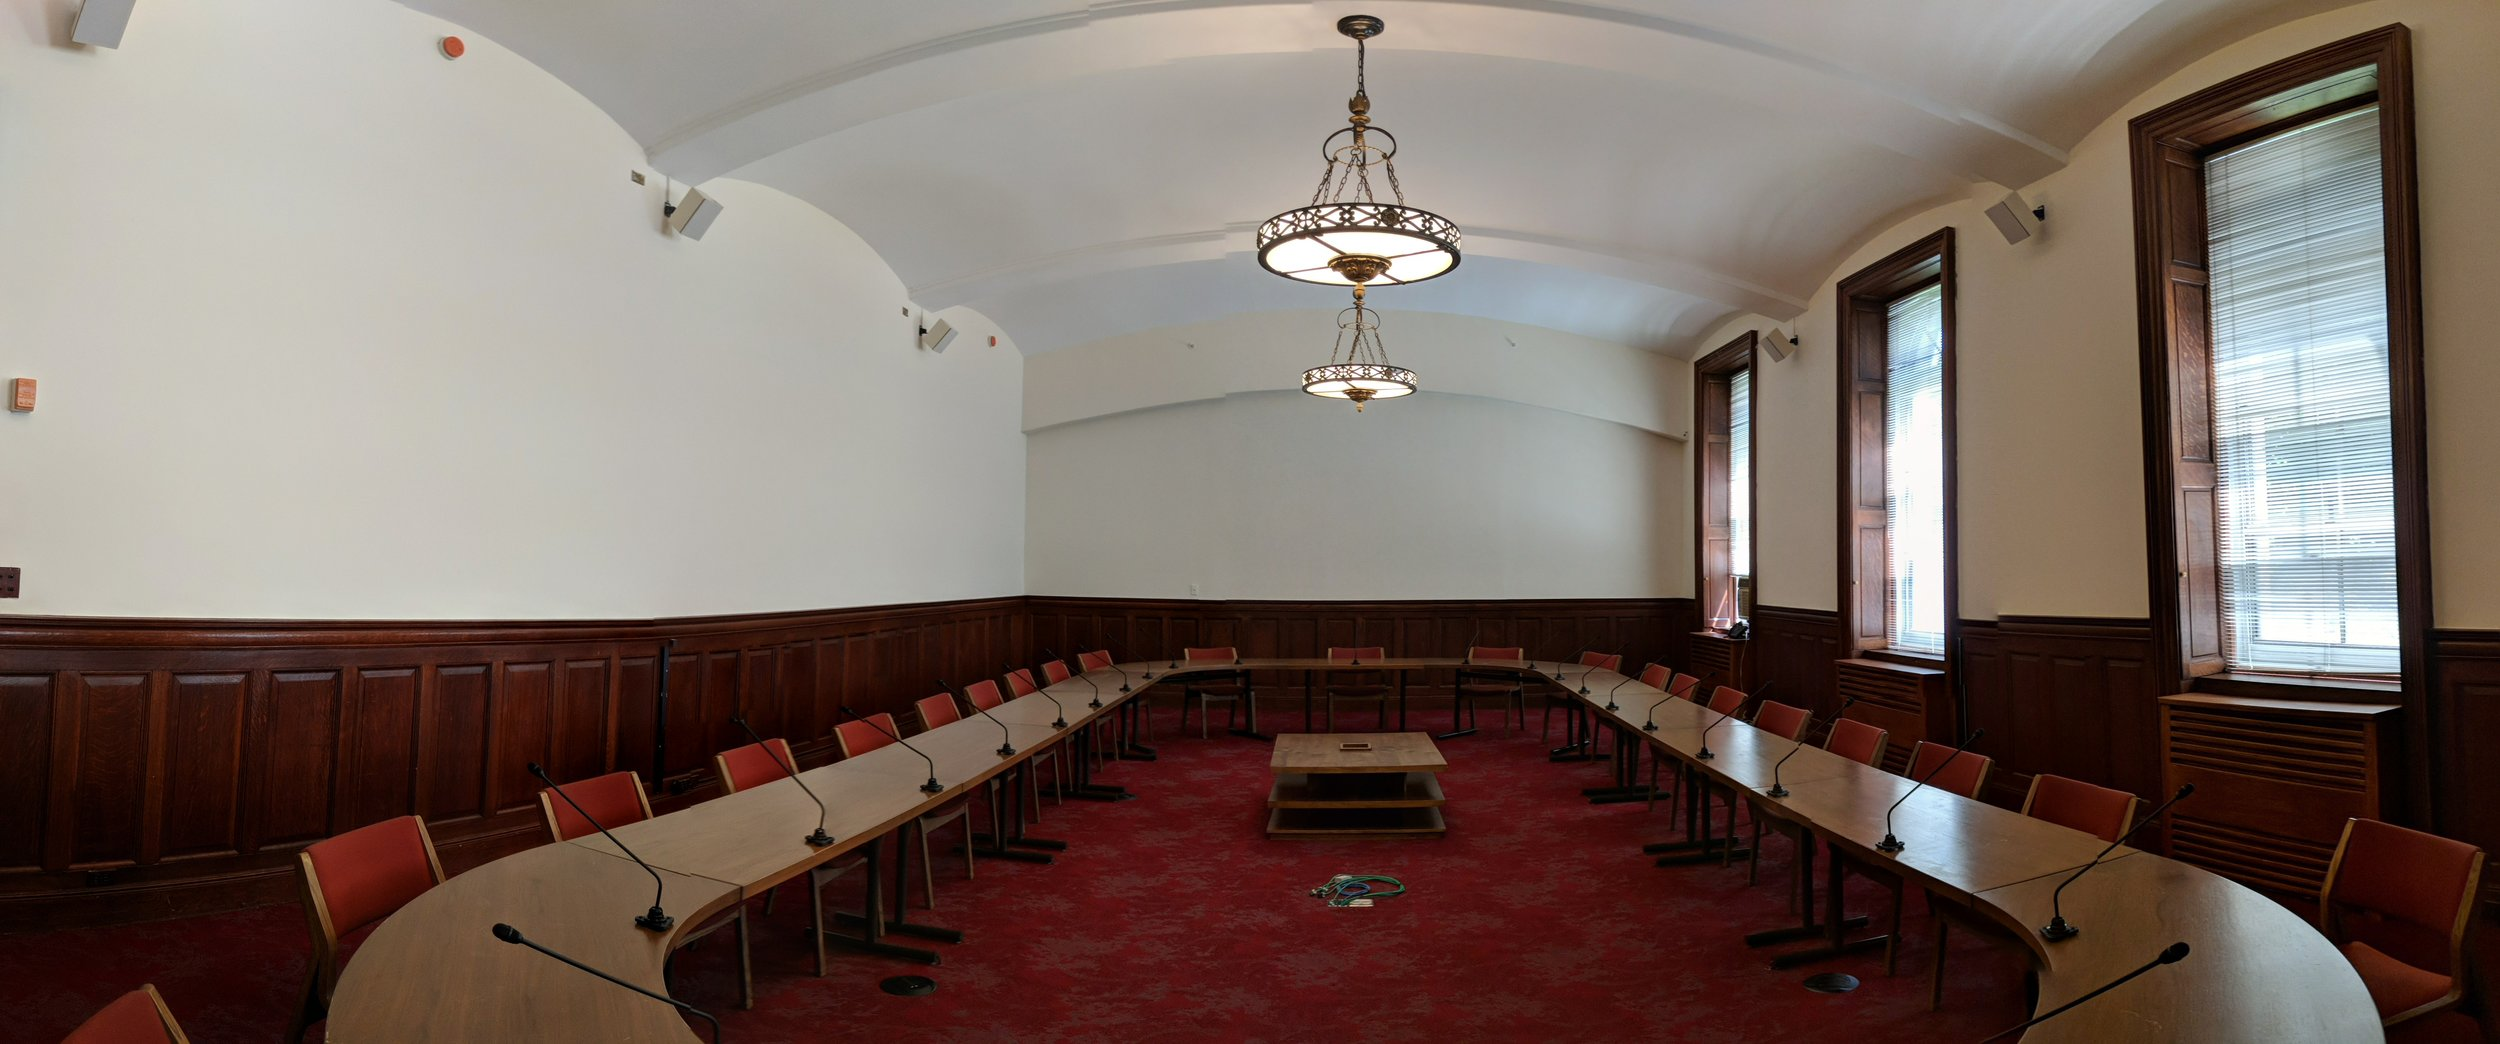 The Boardroom at St. Joseph Seminary in Yonkers, NY utilizes 23 Audio-Technica ES905CL microphones